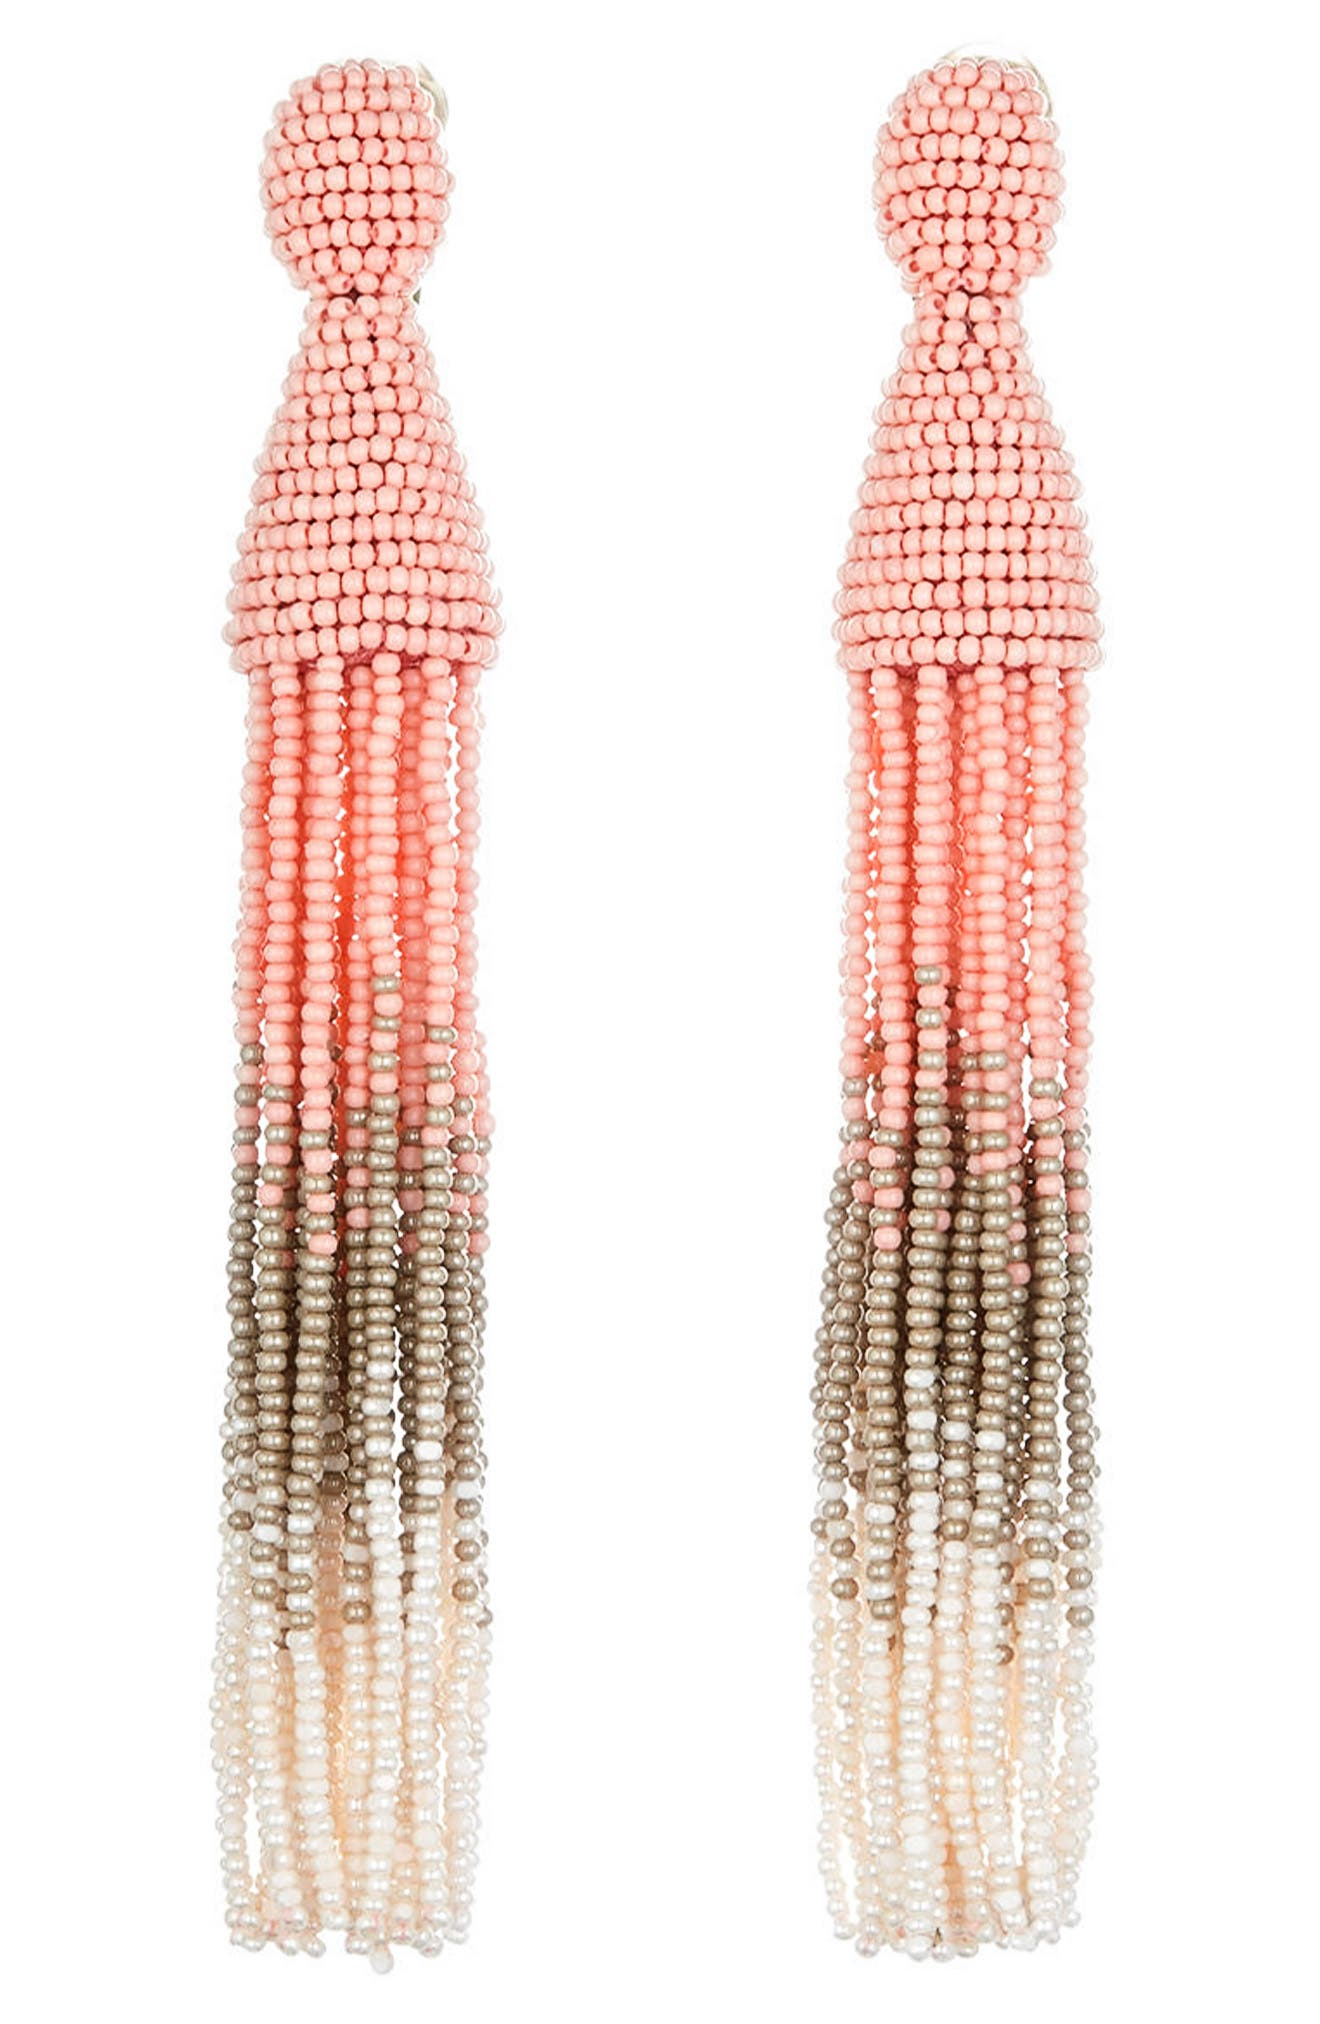 Ombré Long Tassel Clip Earrings,                             Main thumbnail 1, color,                             Pink